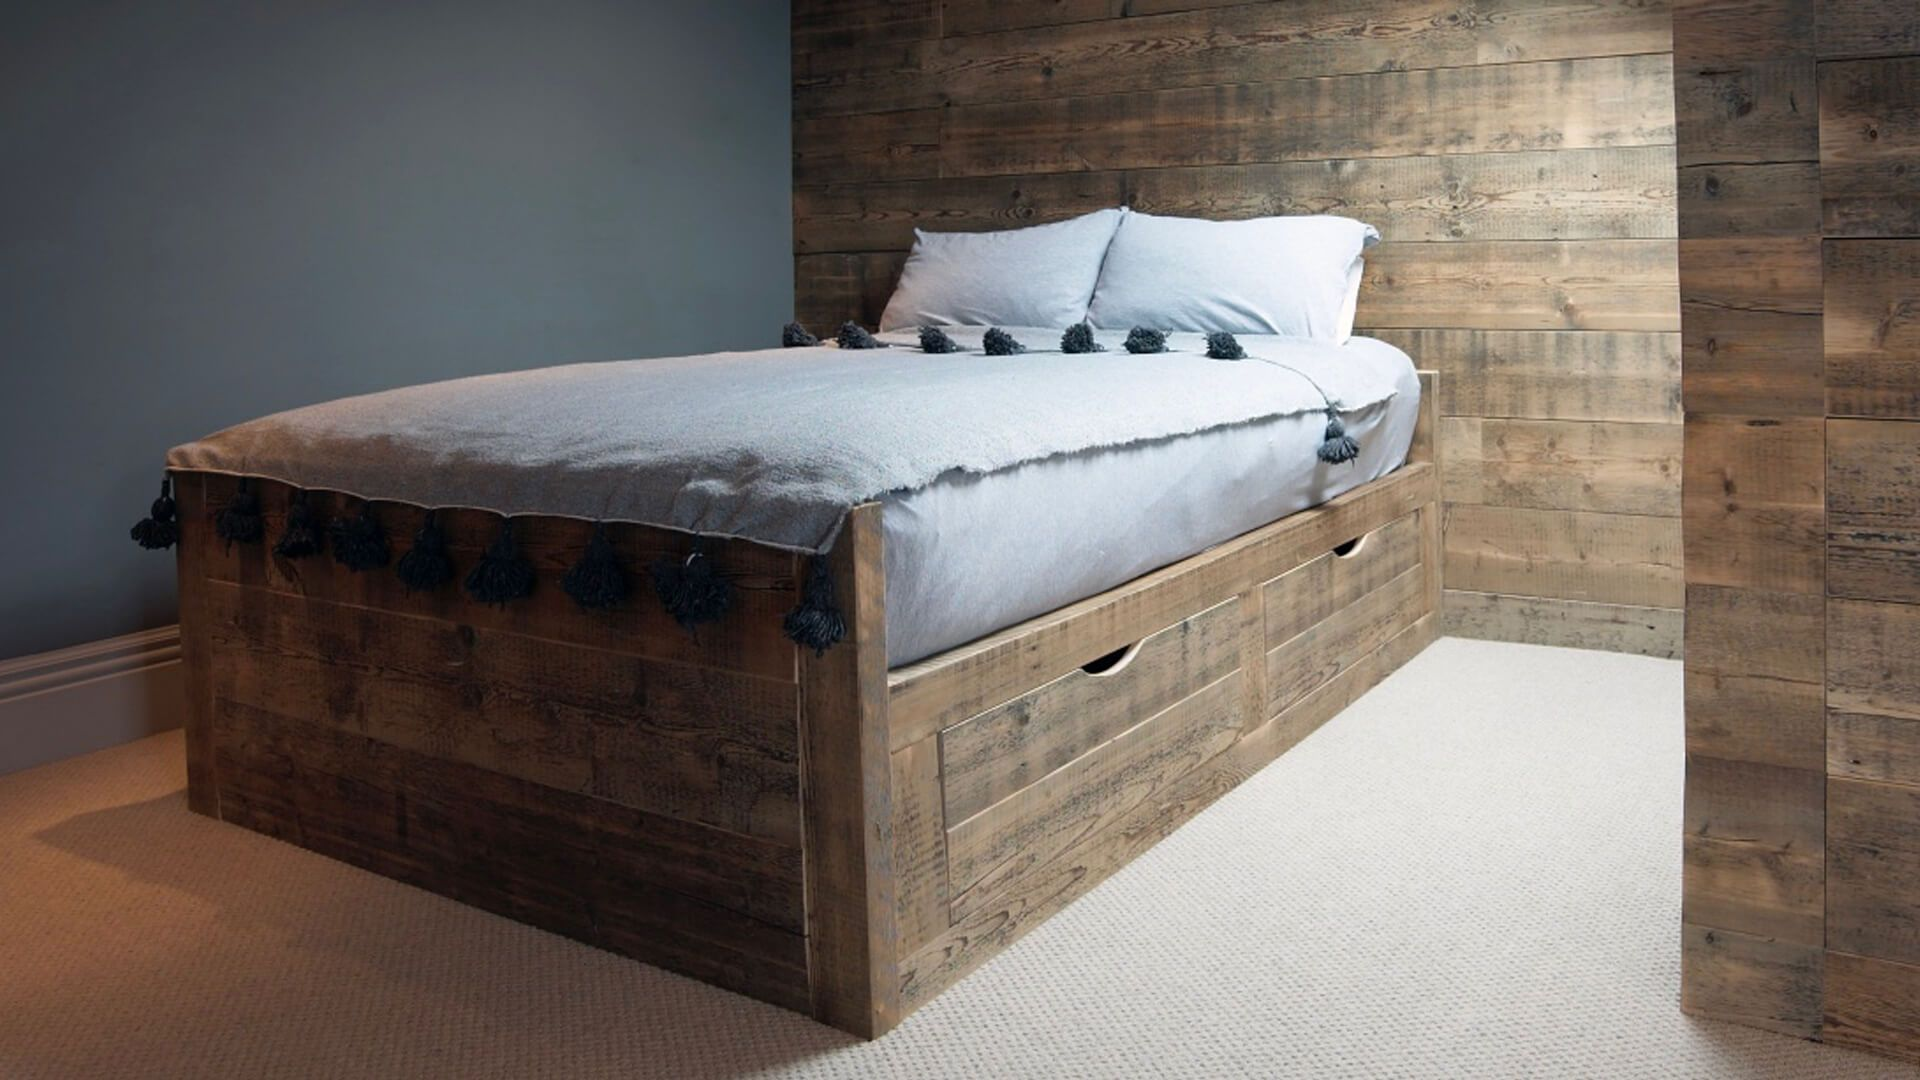 Bespoke Wooden Furniture Reclaimed Pine Bed Wardrobe And Wooden Wall Panelling Born Of Wood Furniture Reclaimed Pine Bed Wooden Panelling